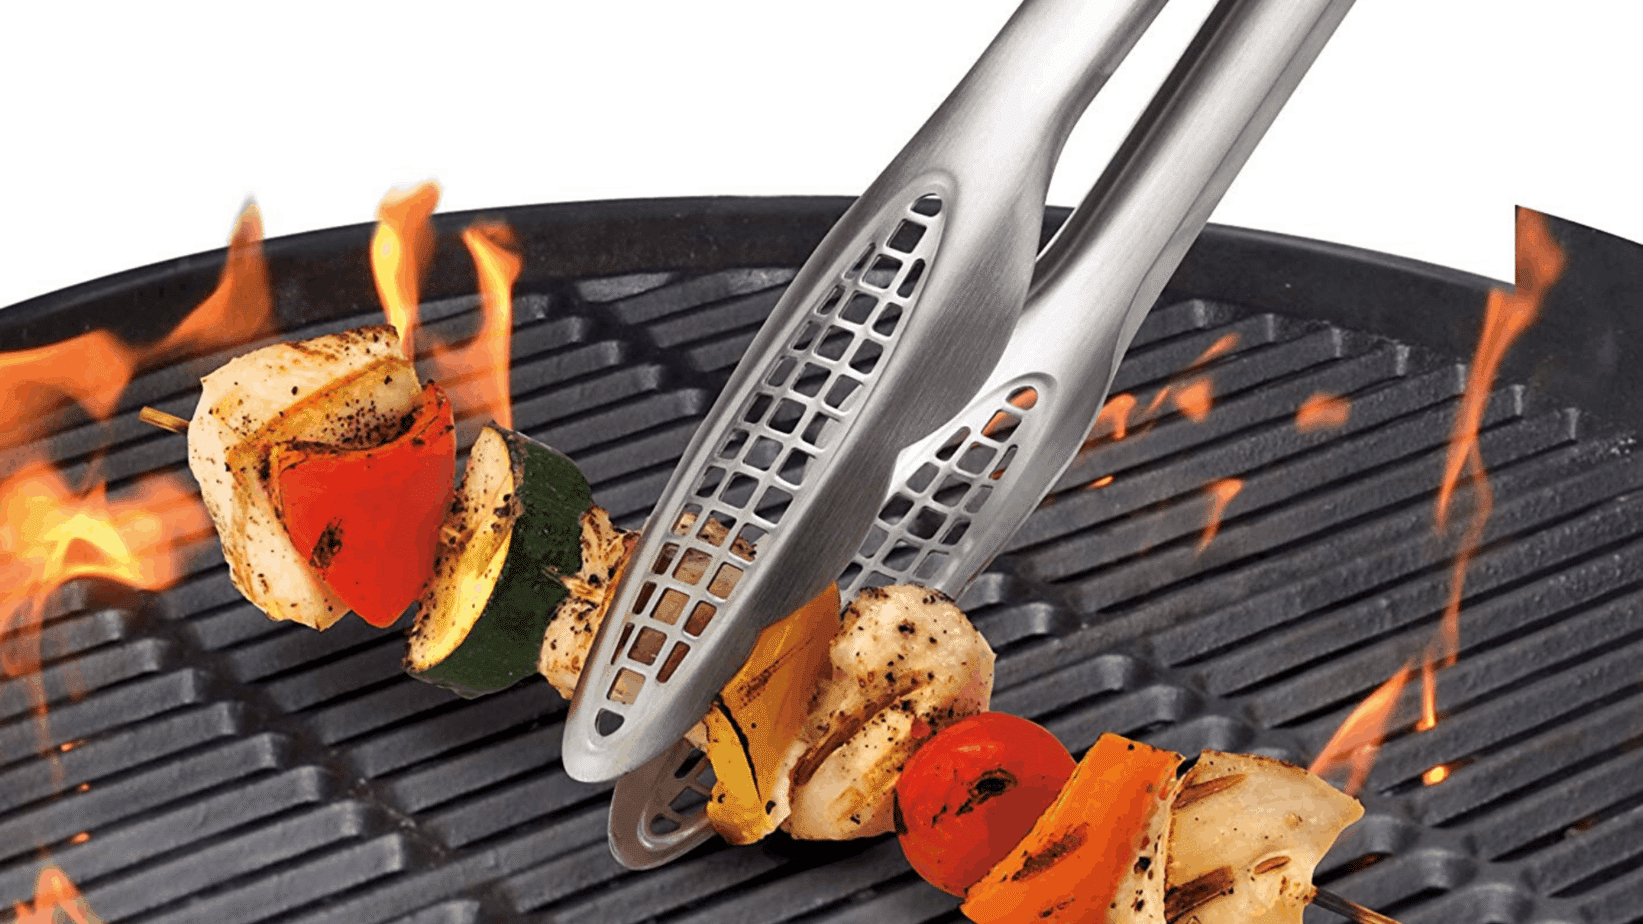 image of Cuisipro Stainless Steel Locking Tongs being used to turn skewer